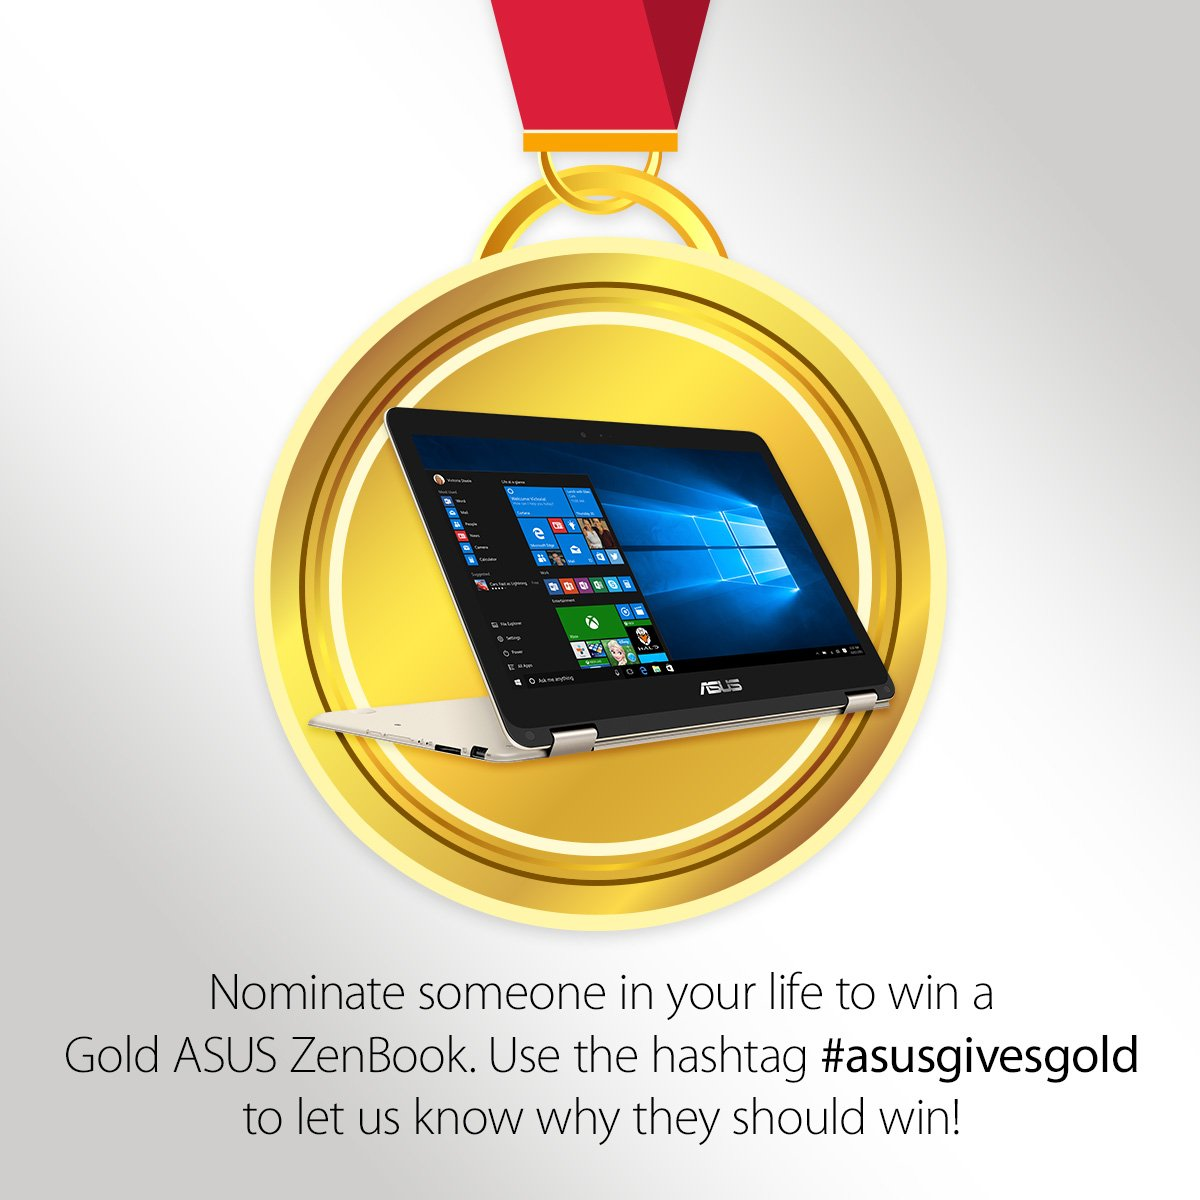 Is there someone in your life who deserves to be a winner? use #asusgivesgold and they could win a #zenbook https://t.co/HC2k69MJCR